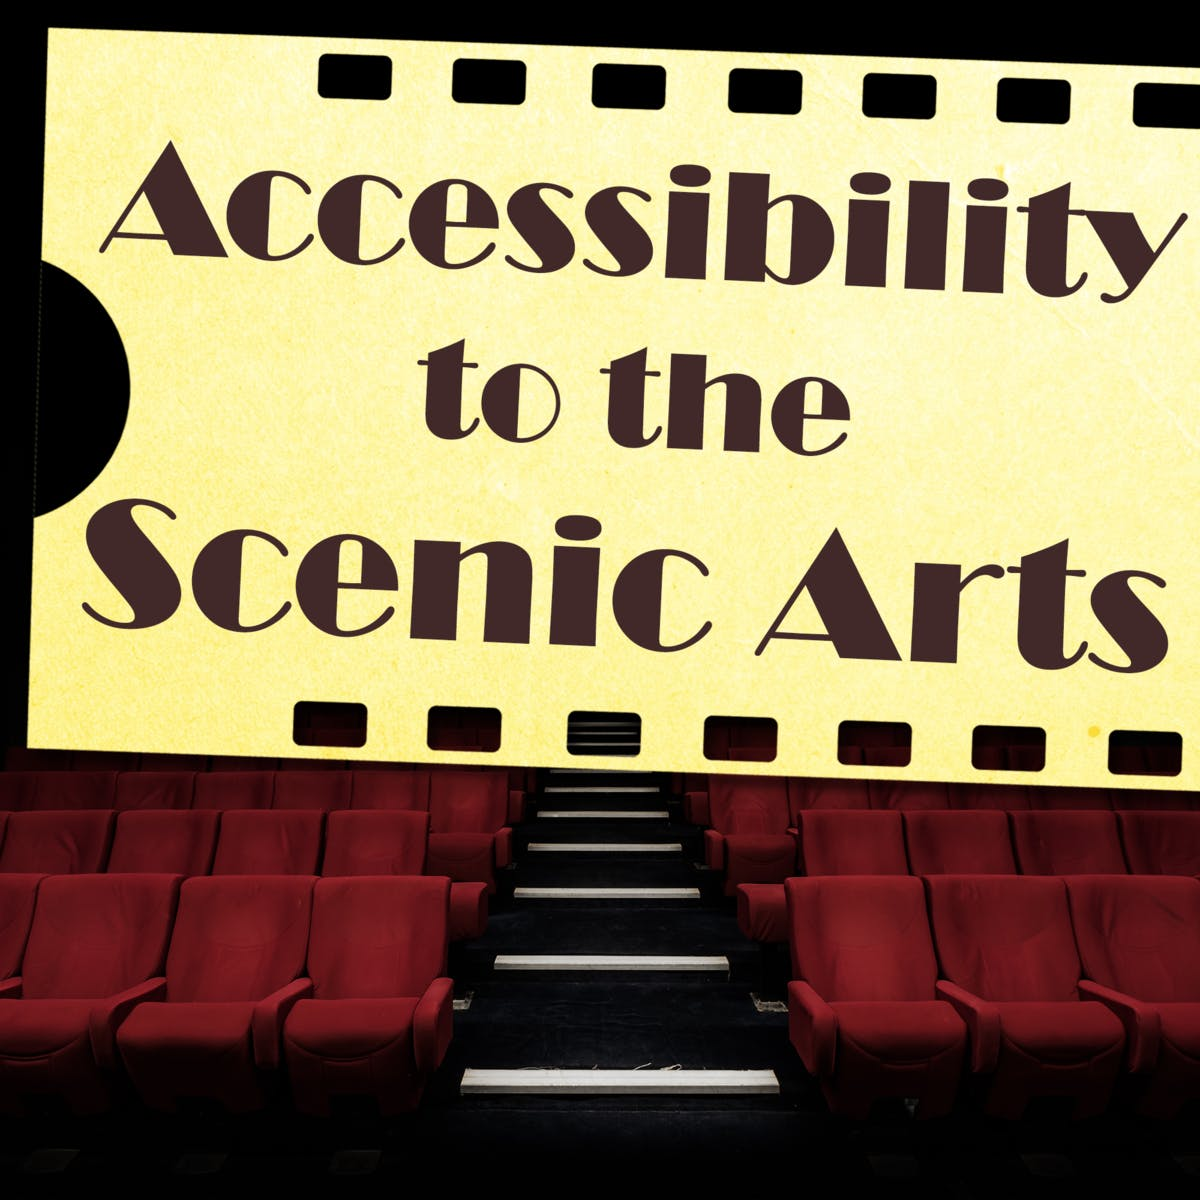 Accessibility to the Scenic Arts